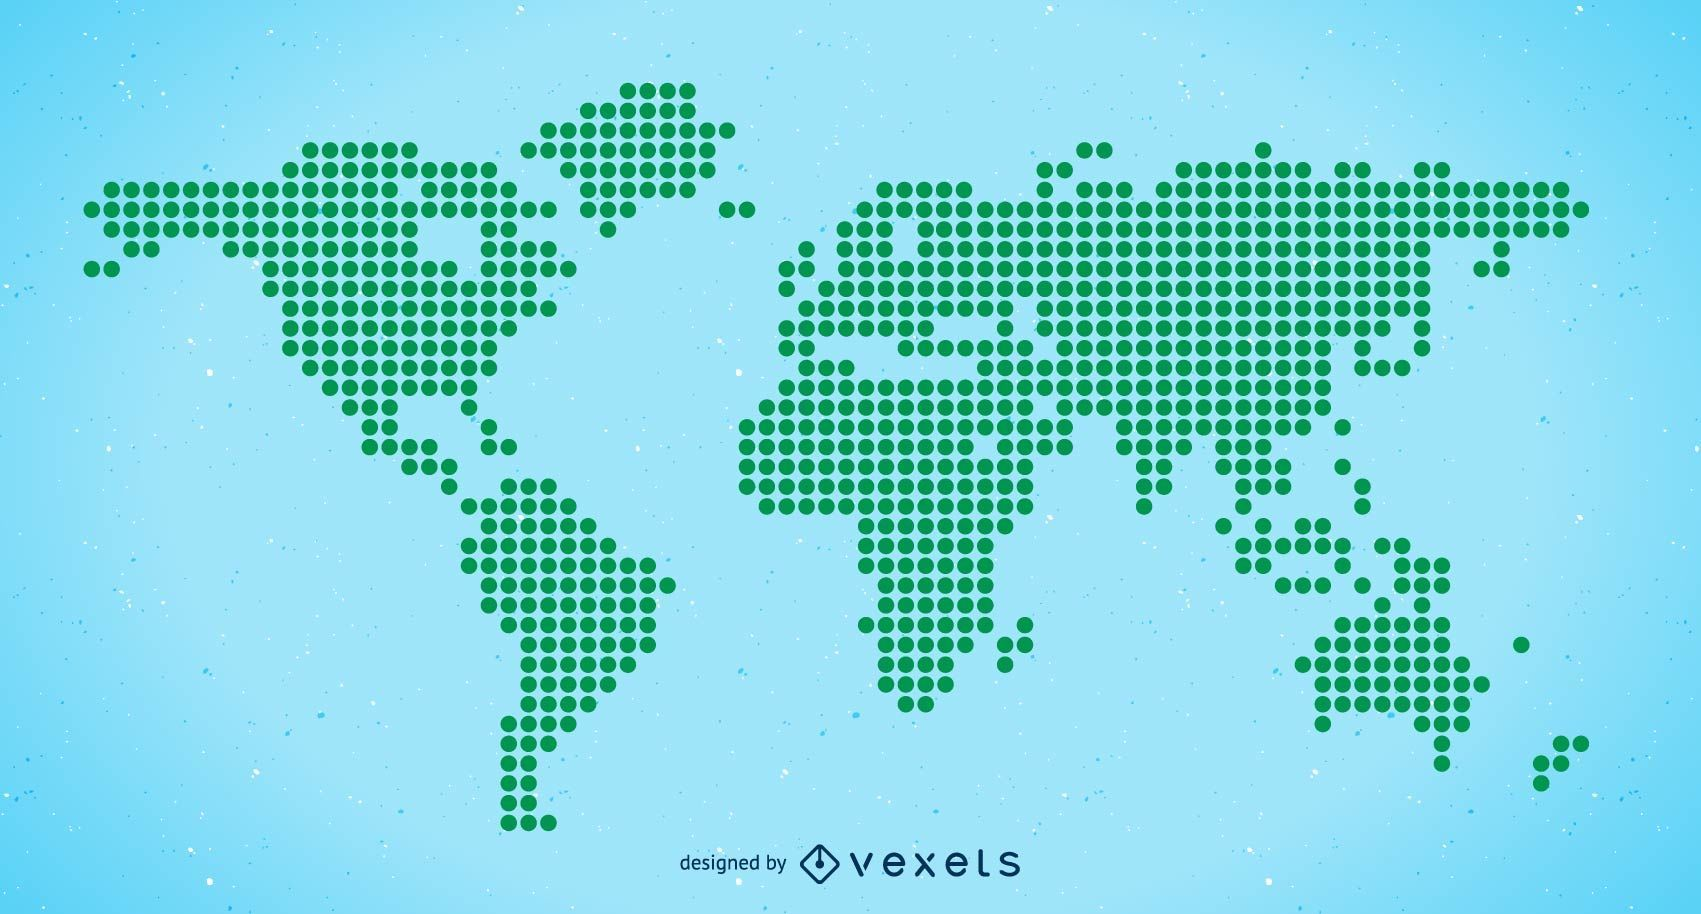 Halftone world map free vector vector download halftone world map free vector download large image 1701x914px license image user gumiabroncs Image collections